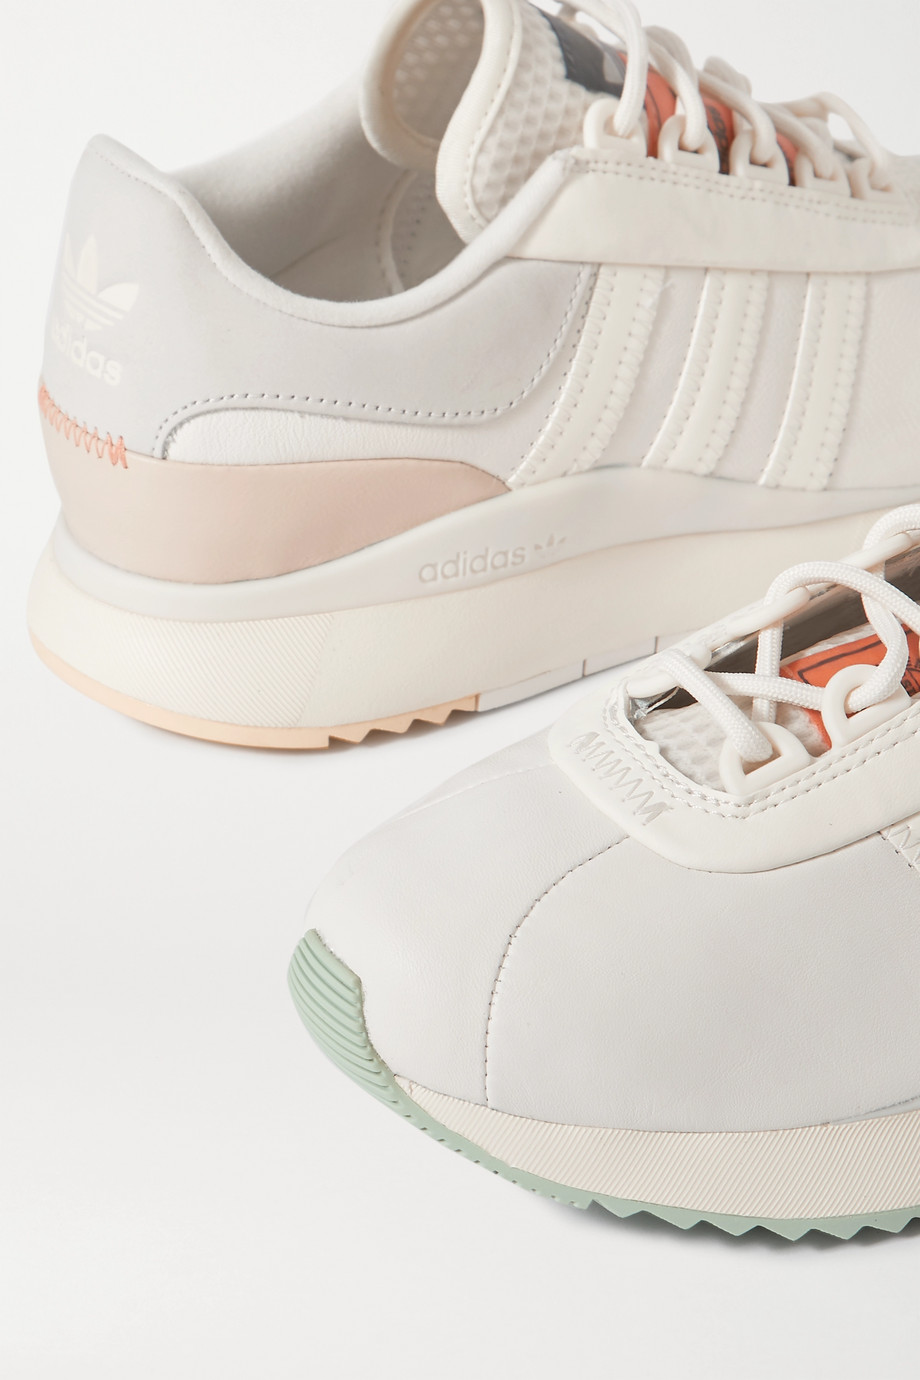 adidas Originals SL Andridge suede-trimmed leather and mesh sneakers